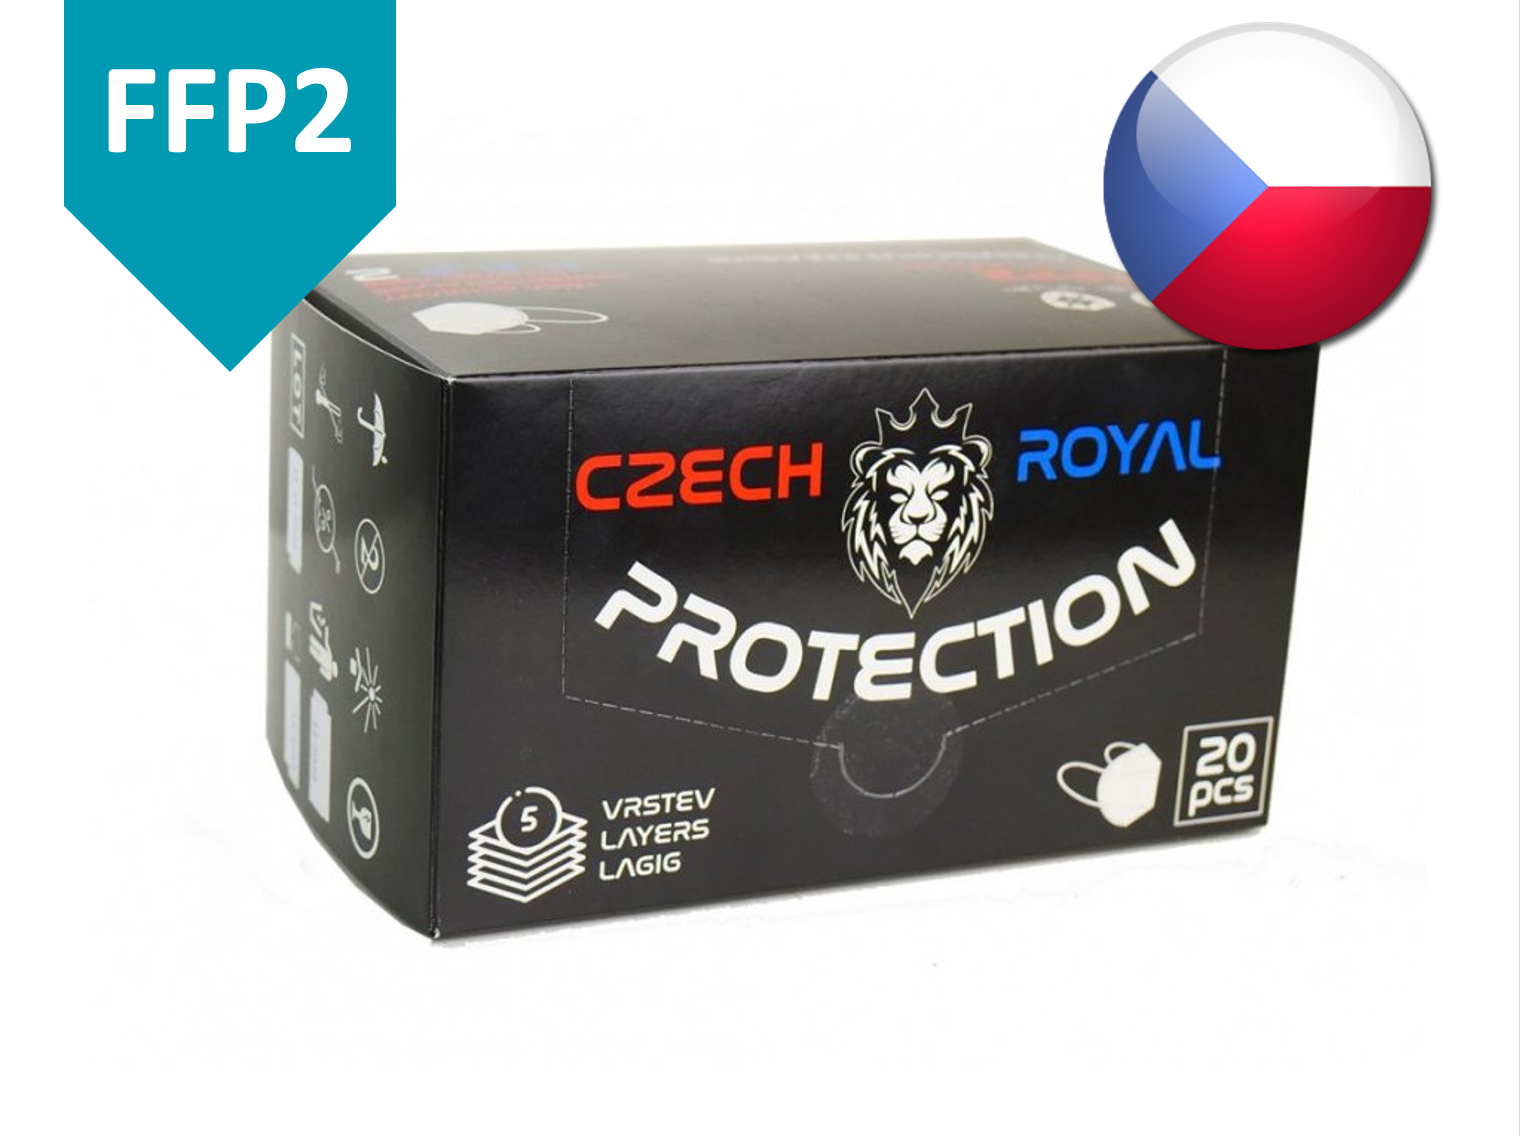 Czech Royal Protection respirátor FFP2 20 ks